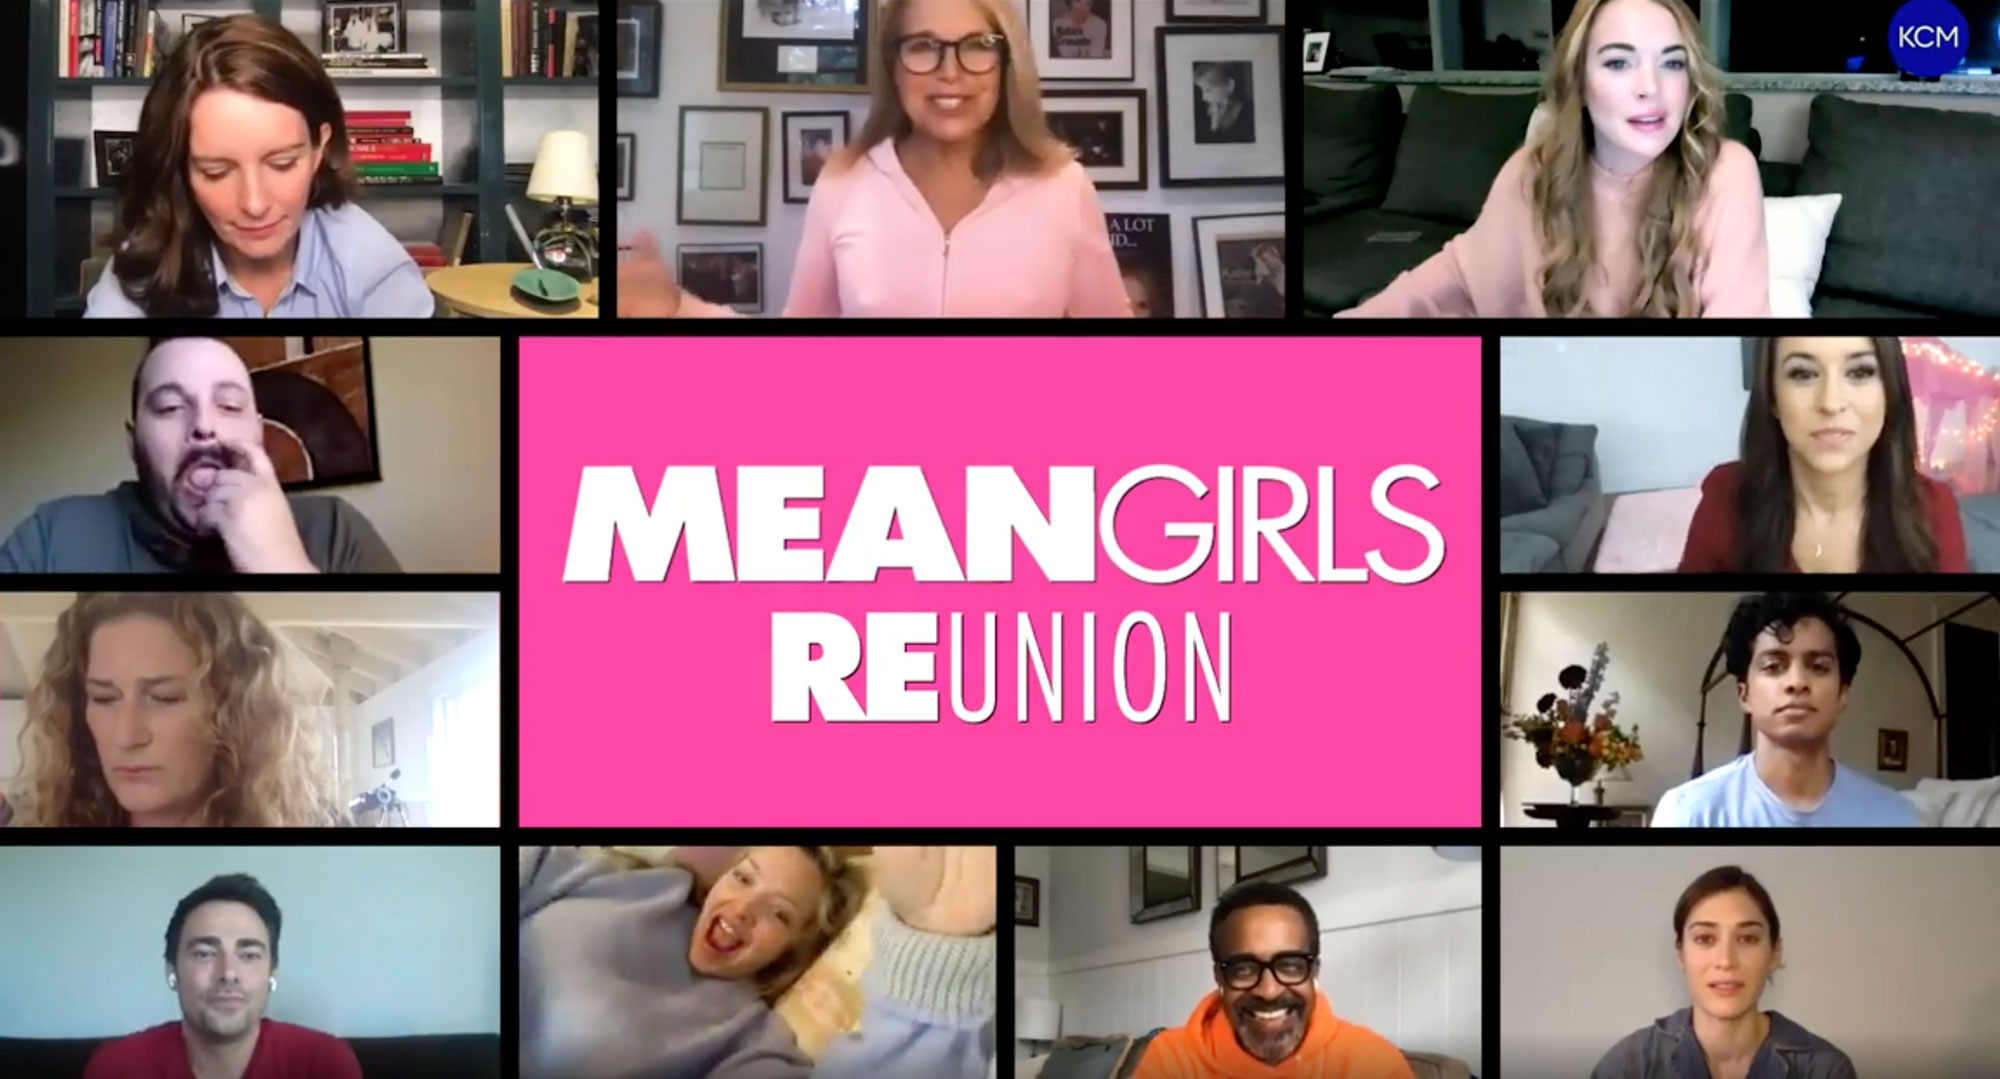 The 'Mean Girls' Cast Reunites Over Video Amid COVID-19